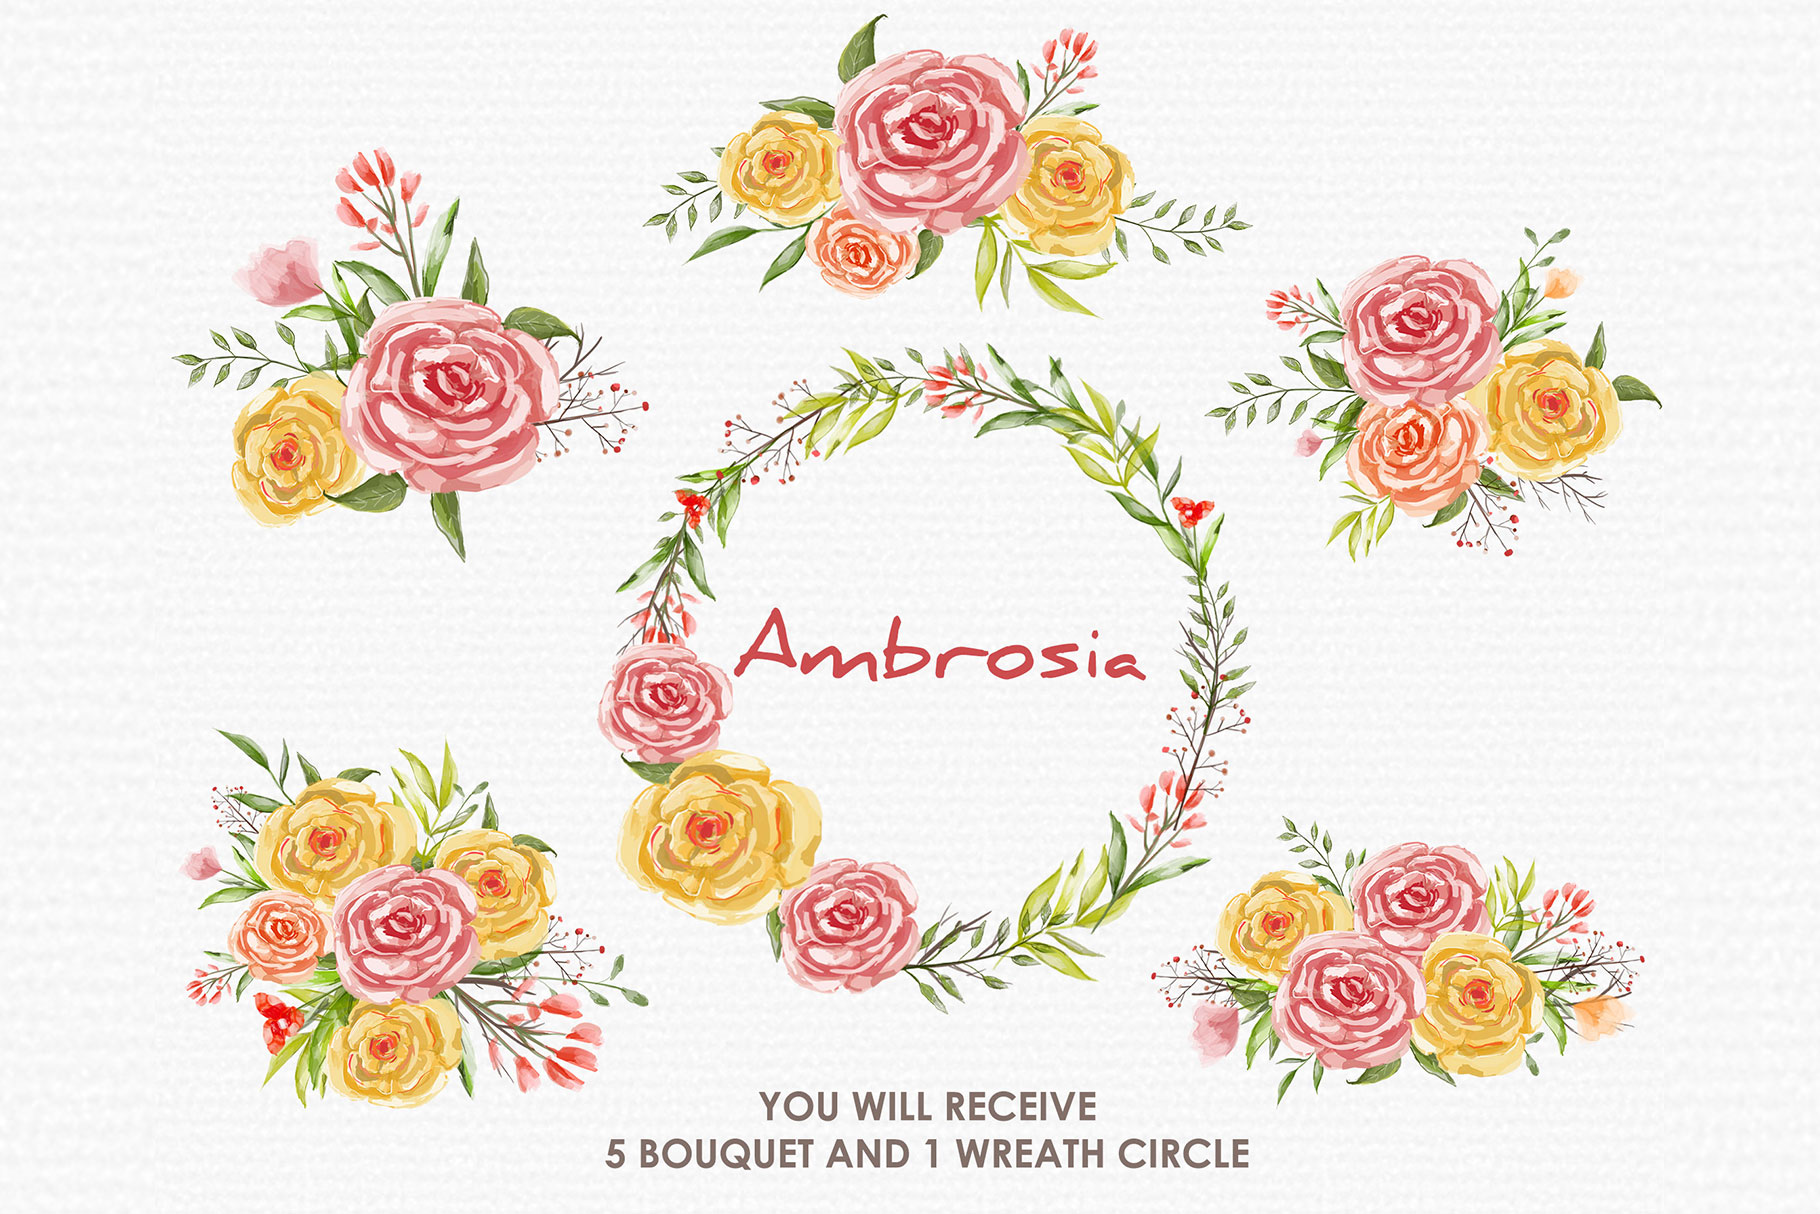 Ambrosia - Digital Watercolor Floral Flower Style Clipart example image 3